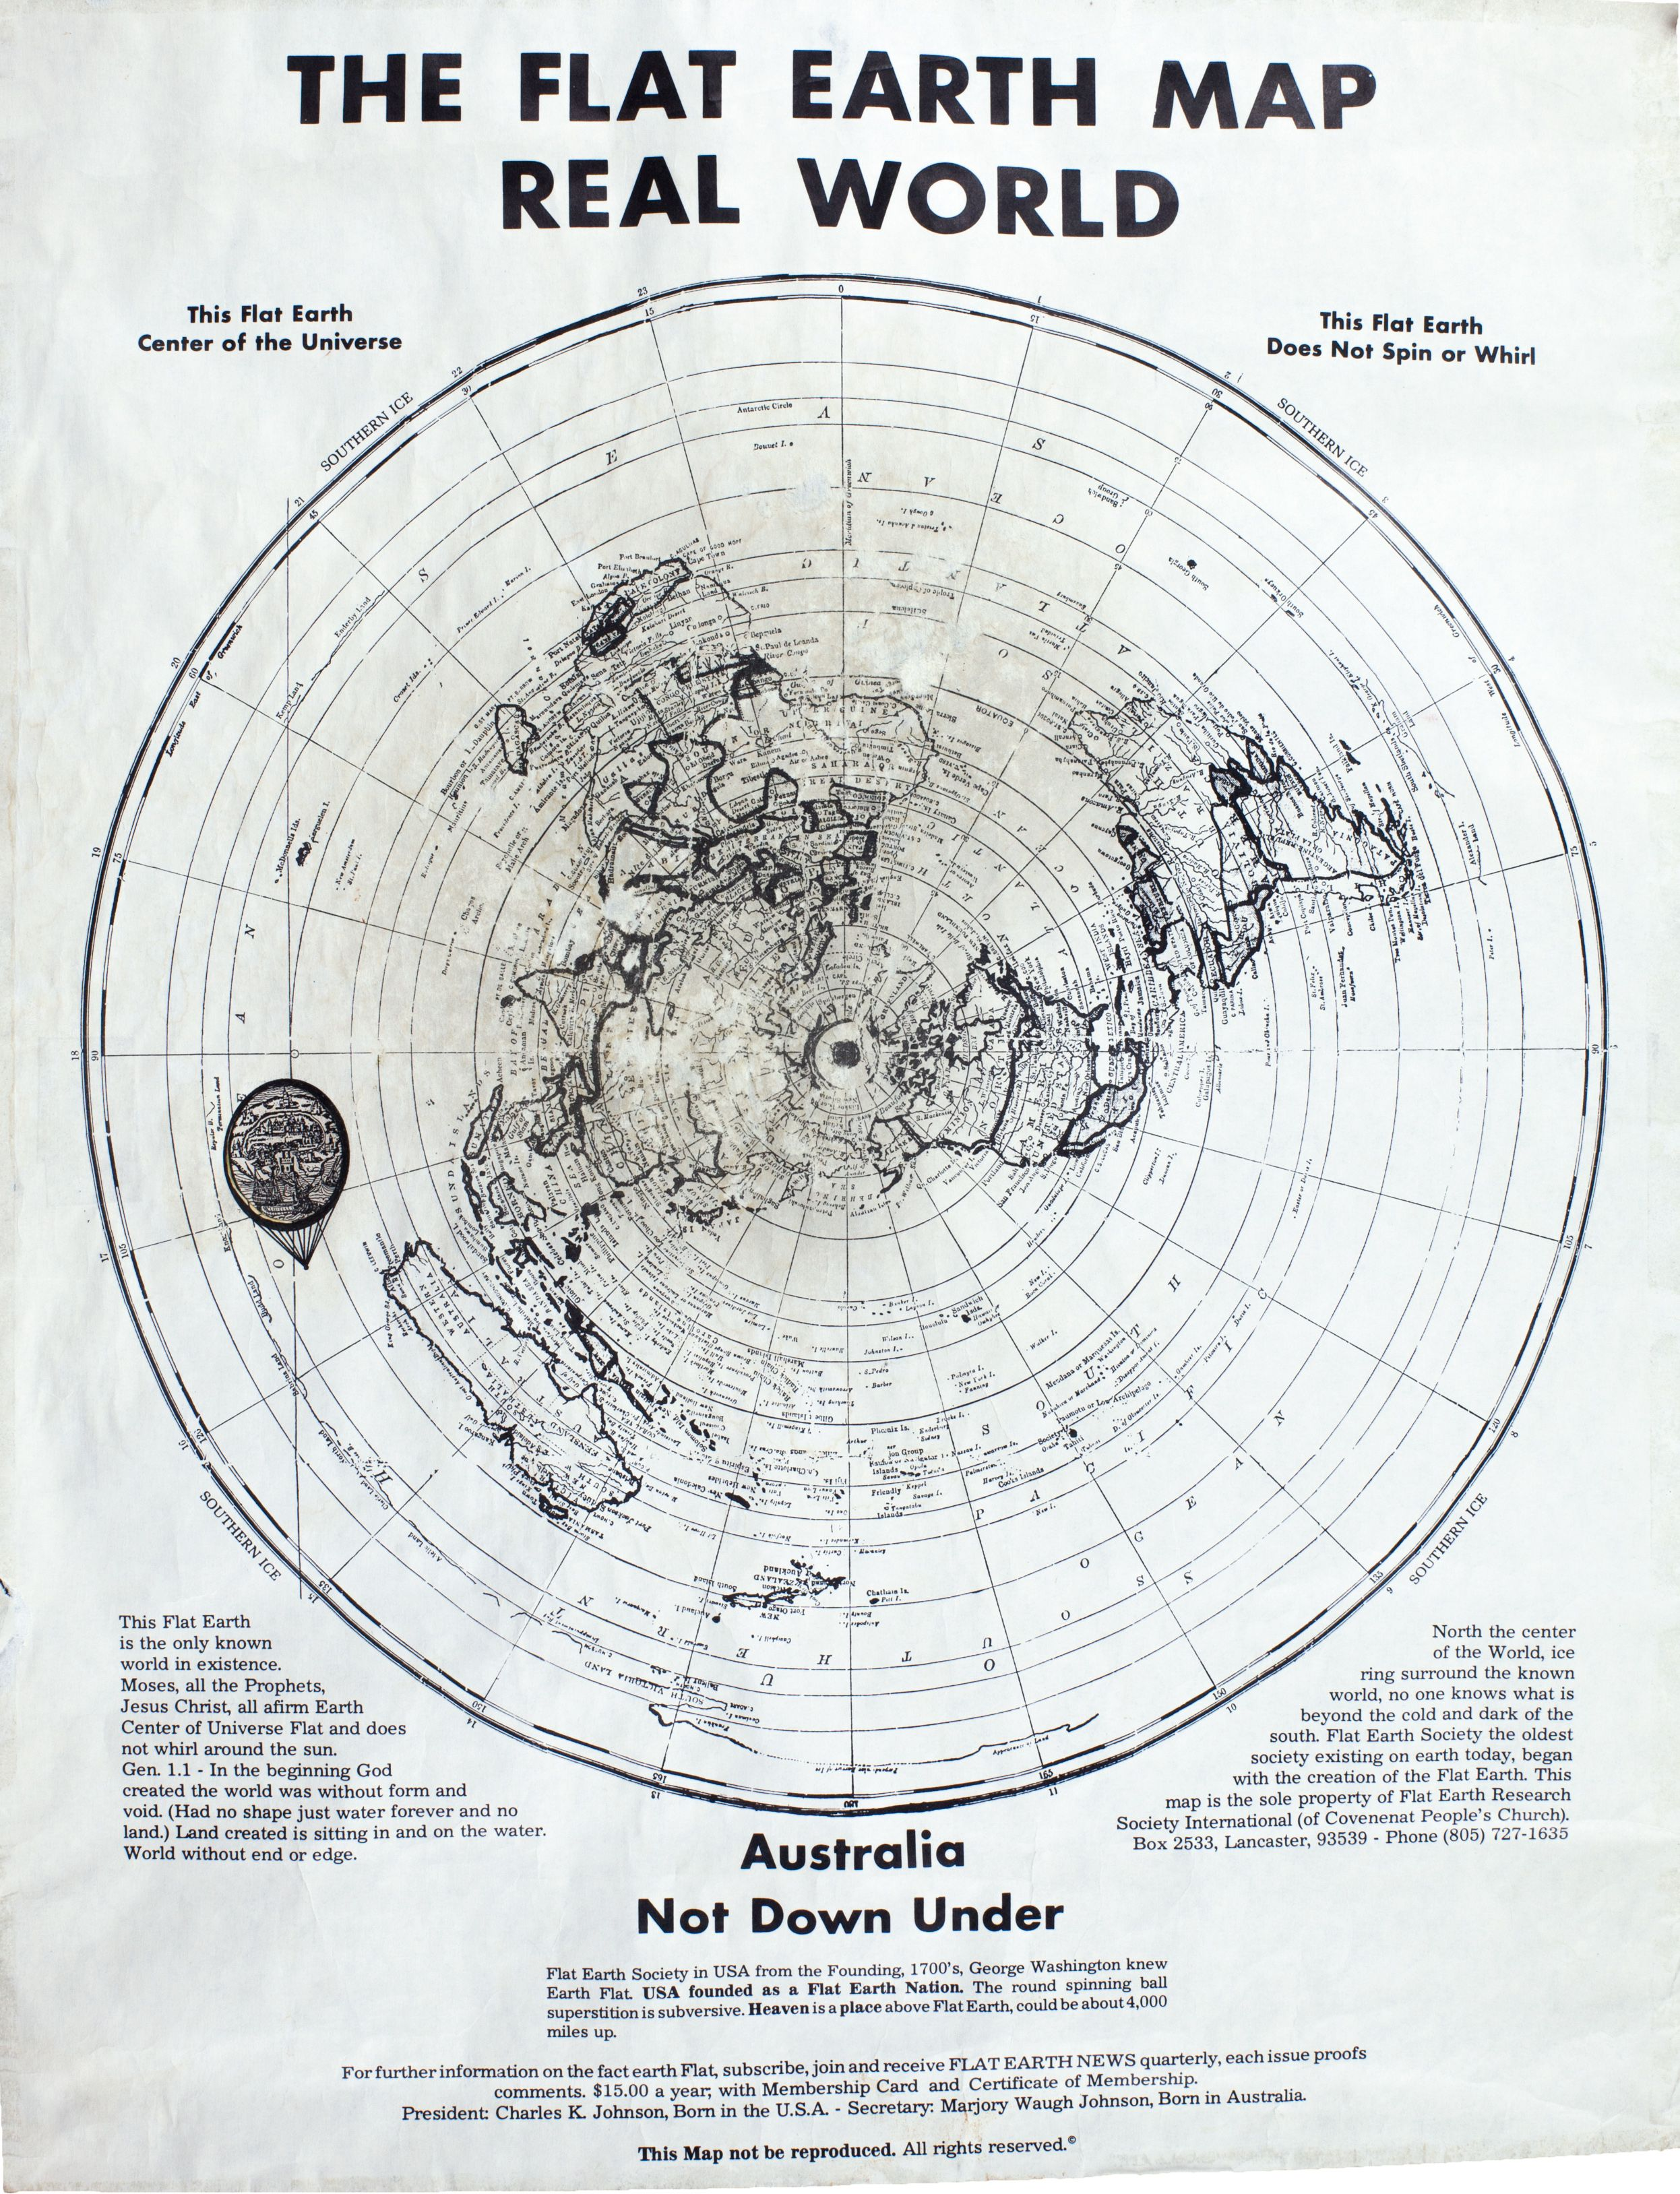 Flat earth map from former fes president charles k johnson flat earth map from former fes president charles k johnson gumiabroncs Images